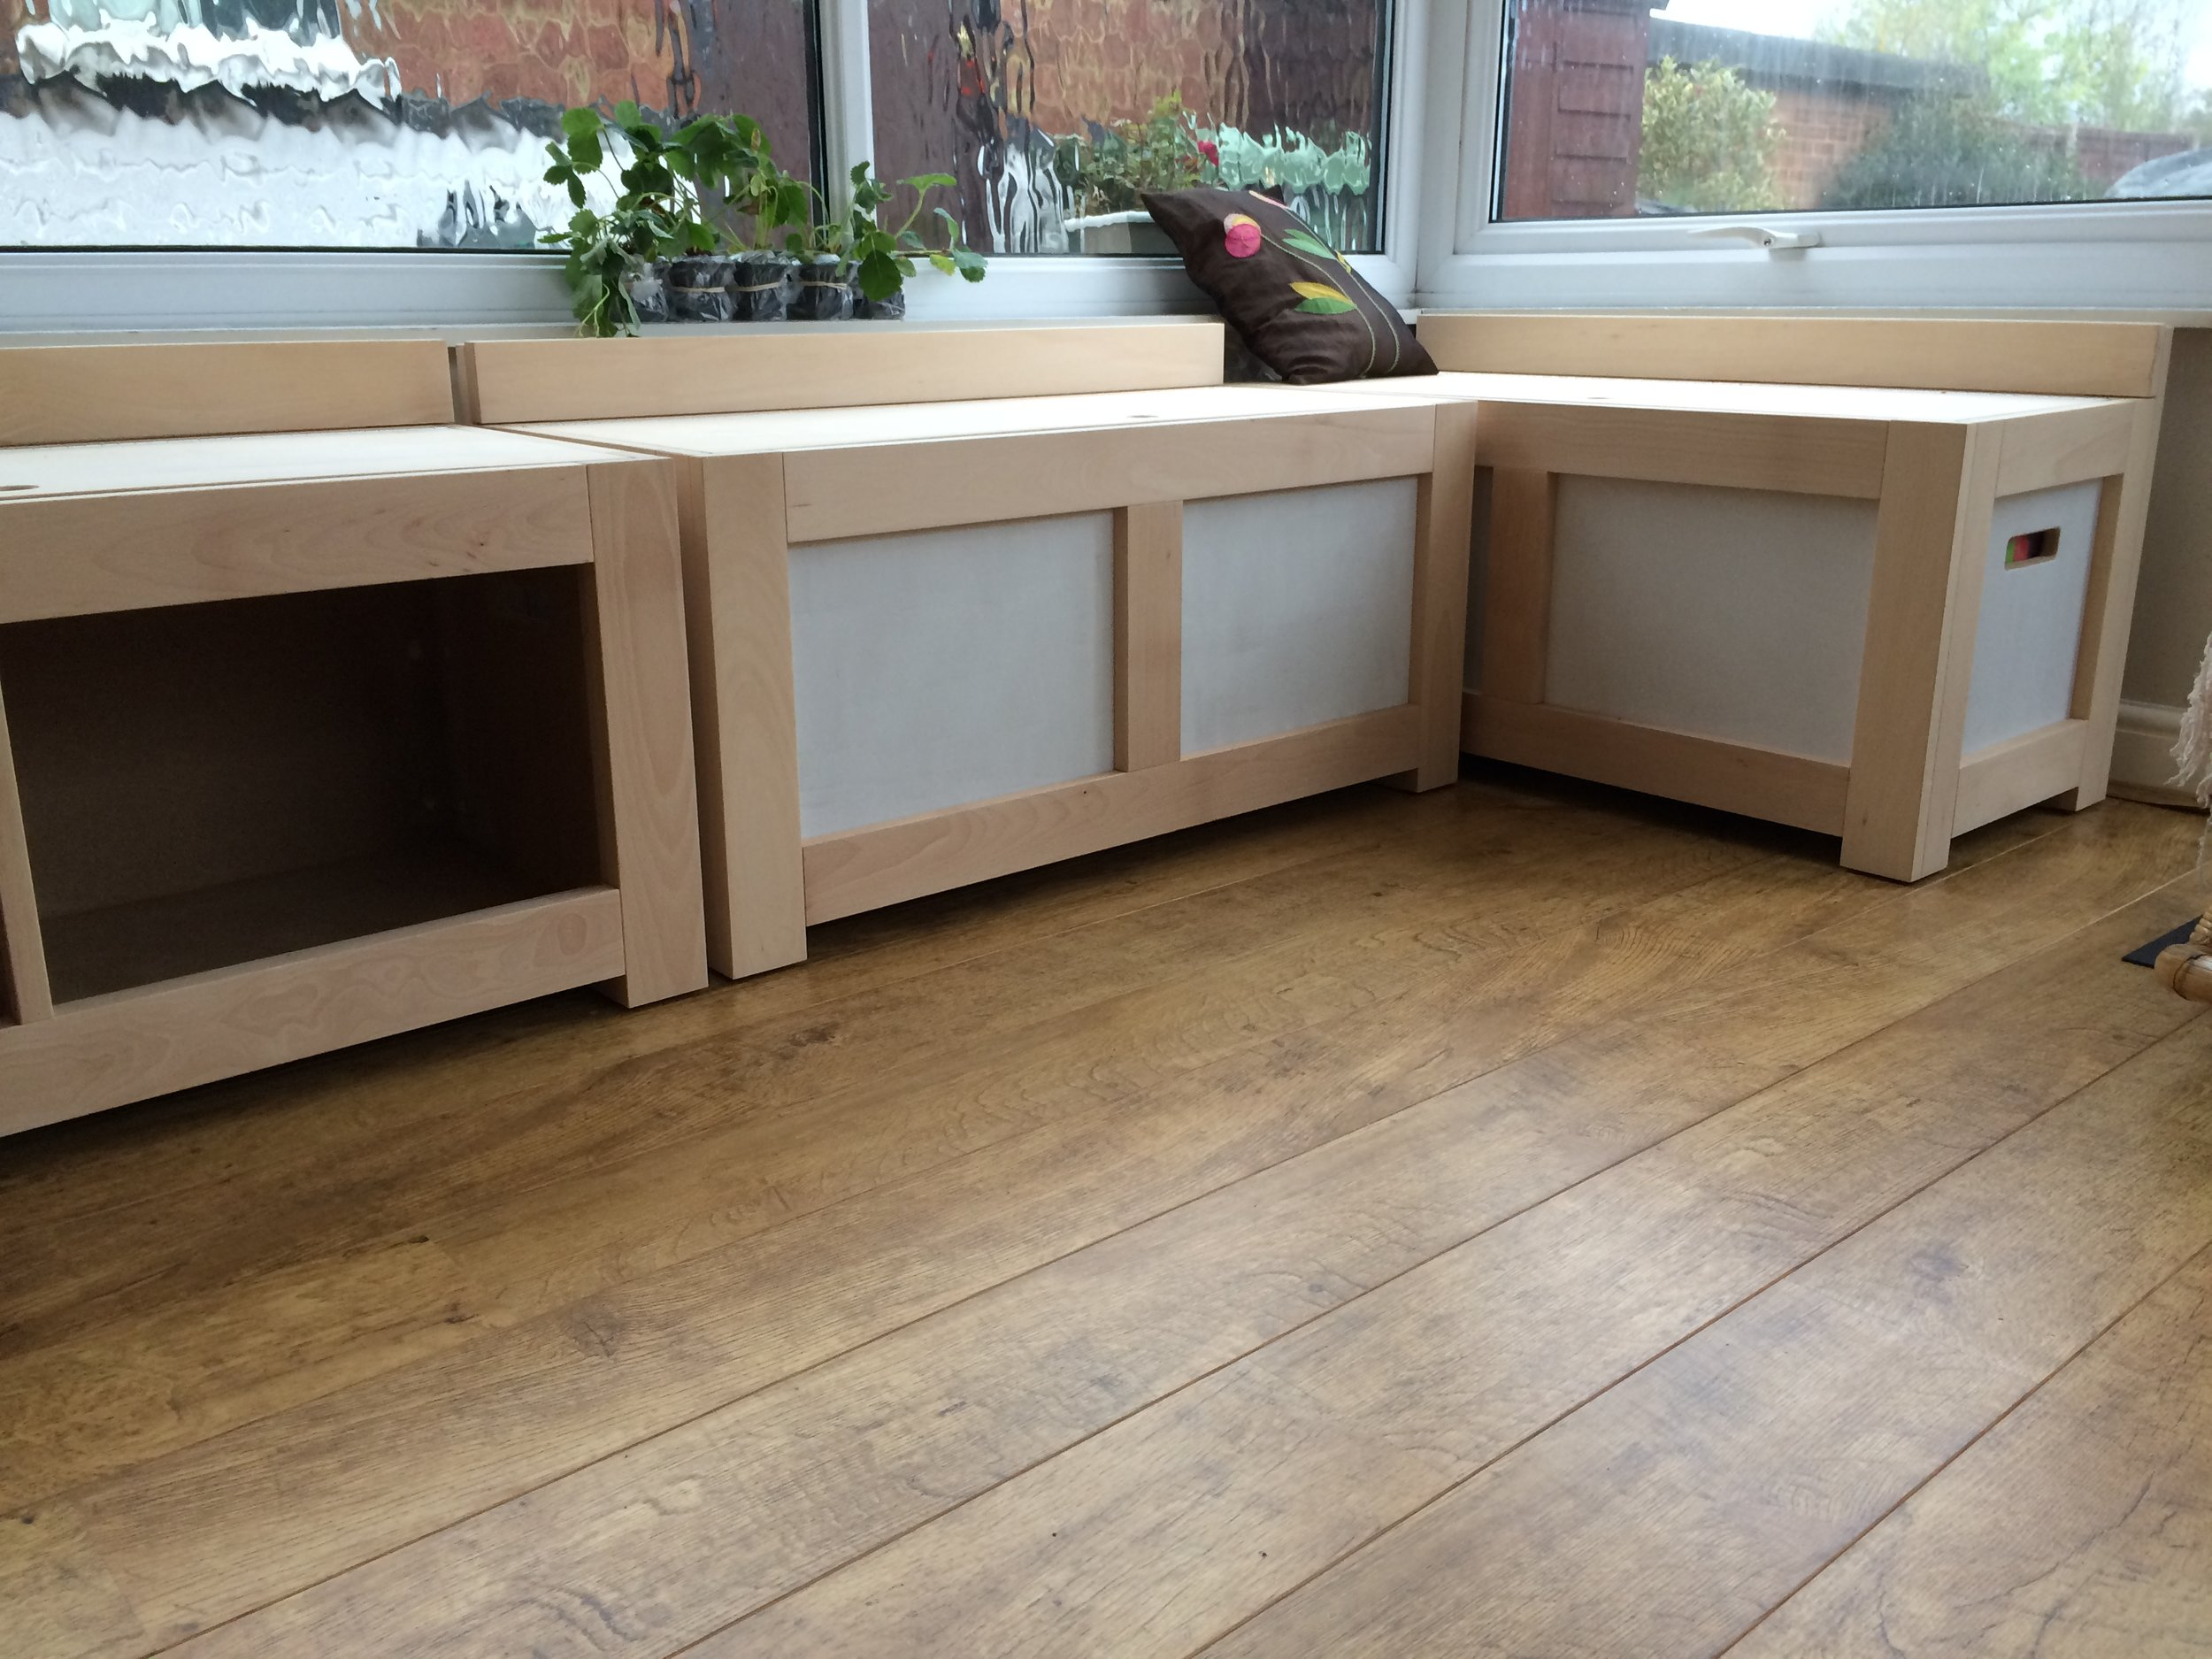 Seating modules with storage